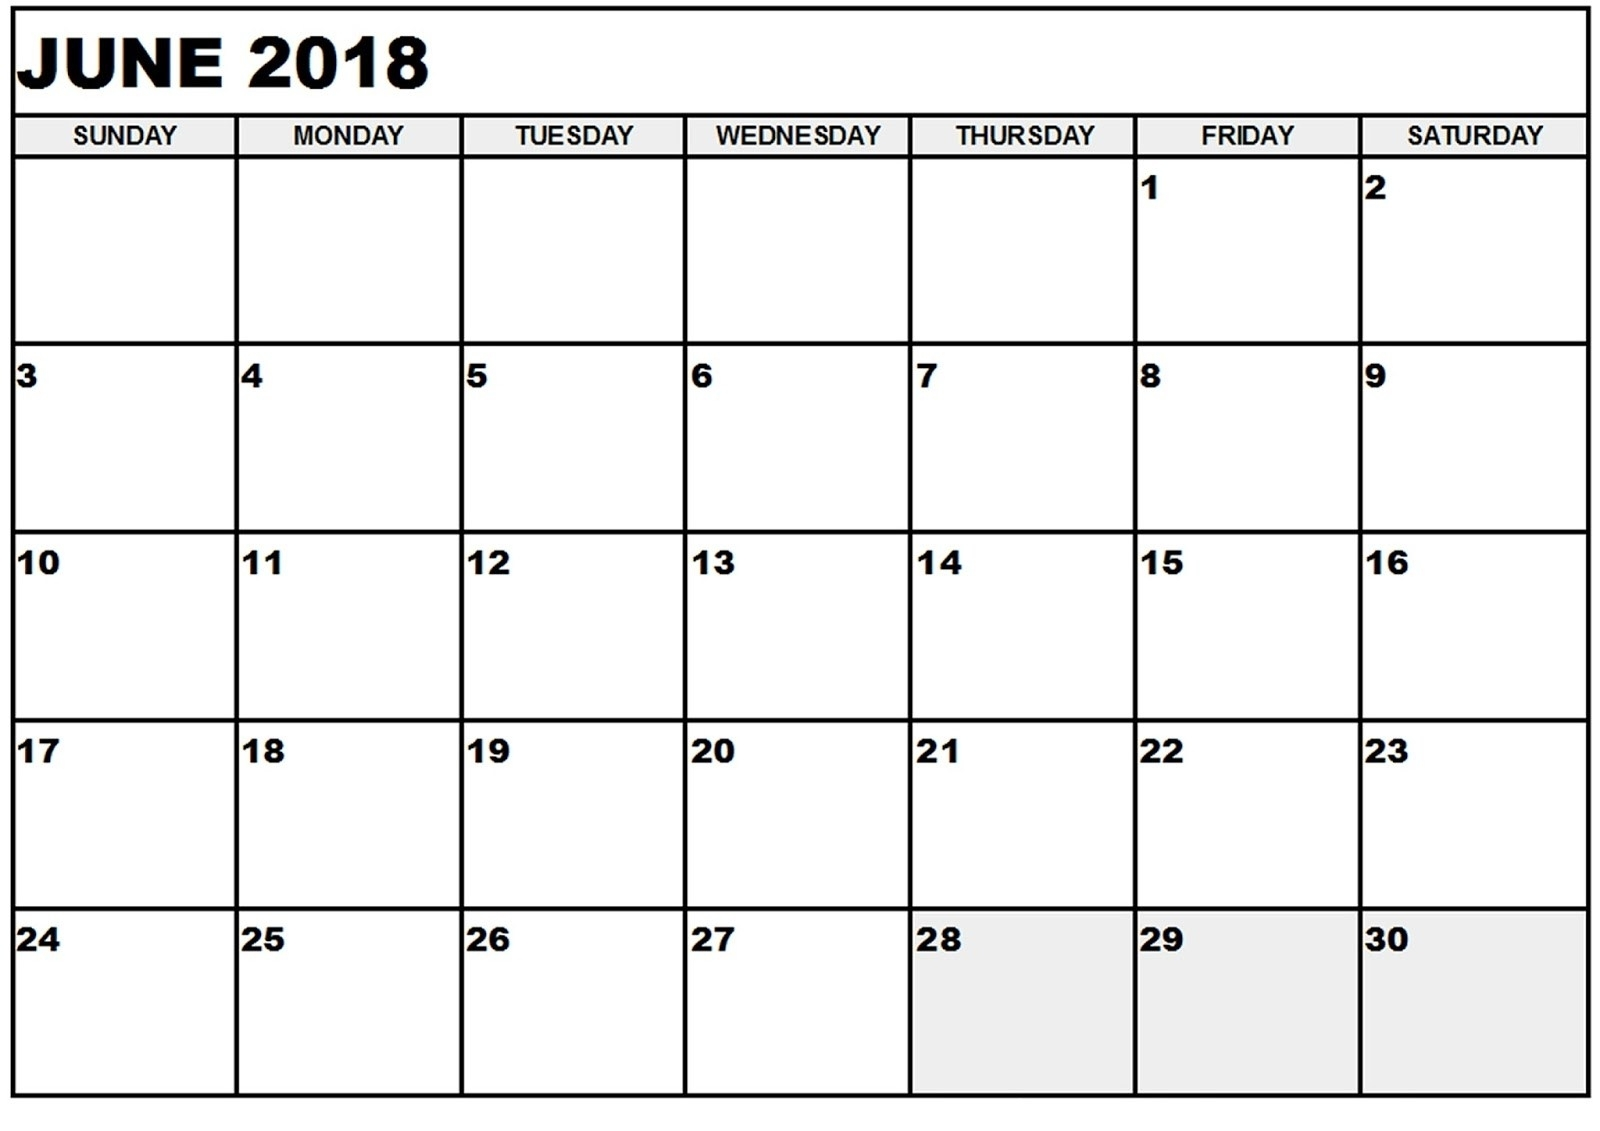 Free June 2018 Calendar In Printable Format Templates